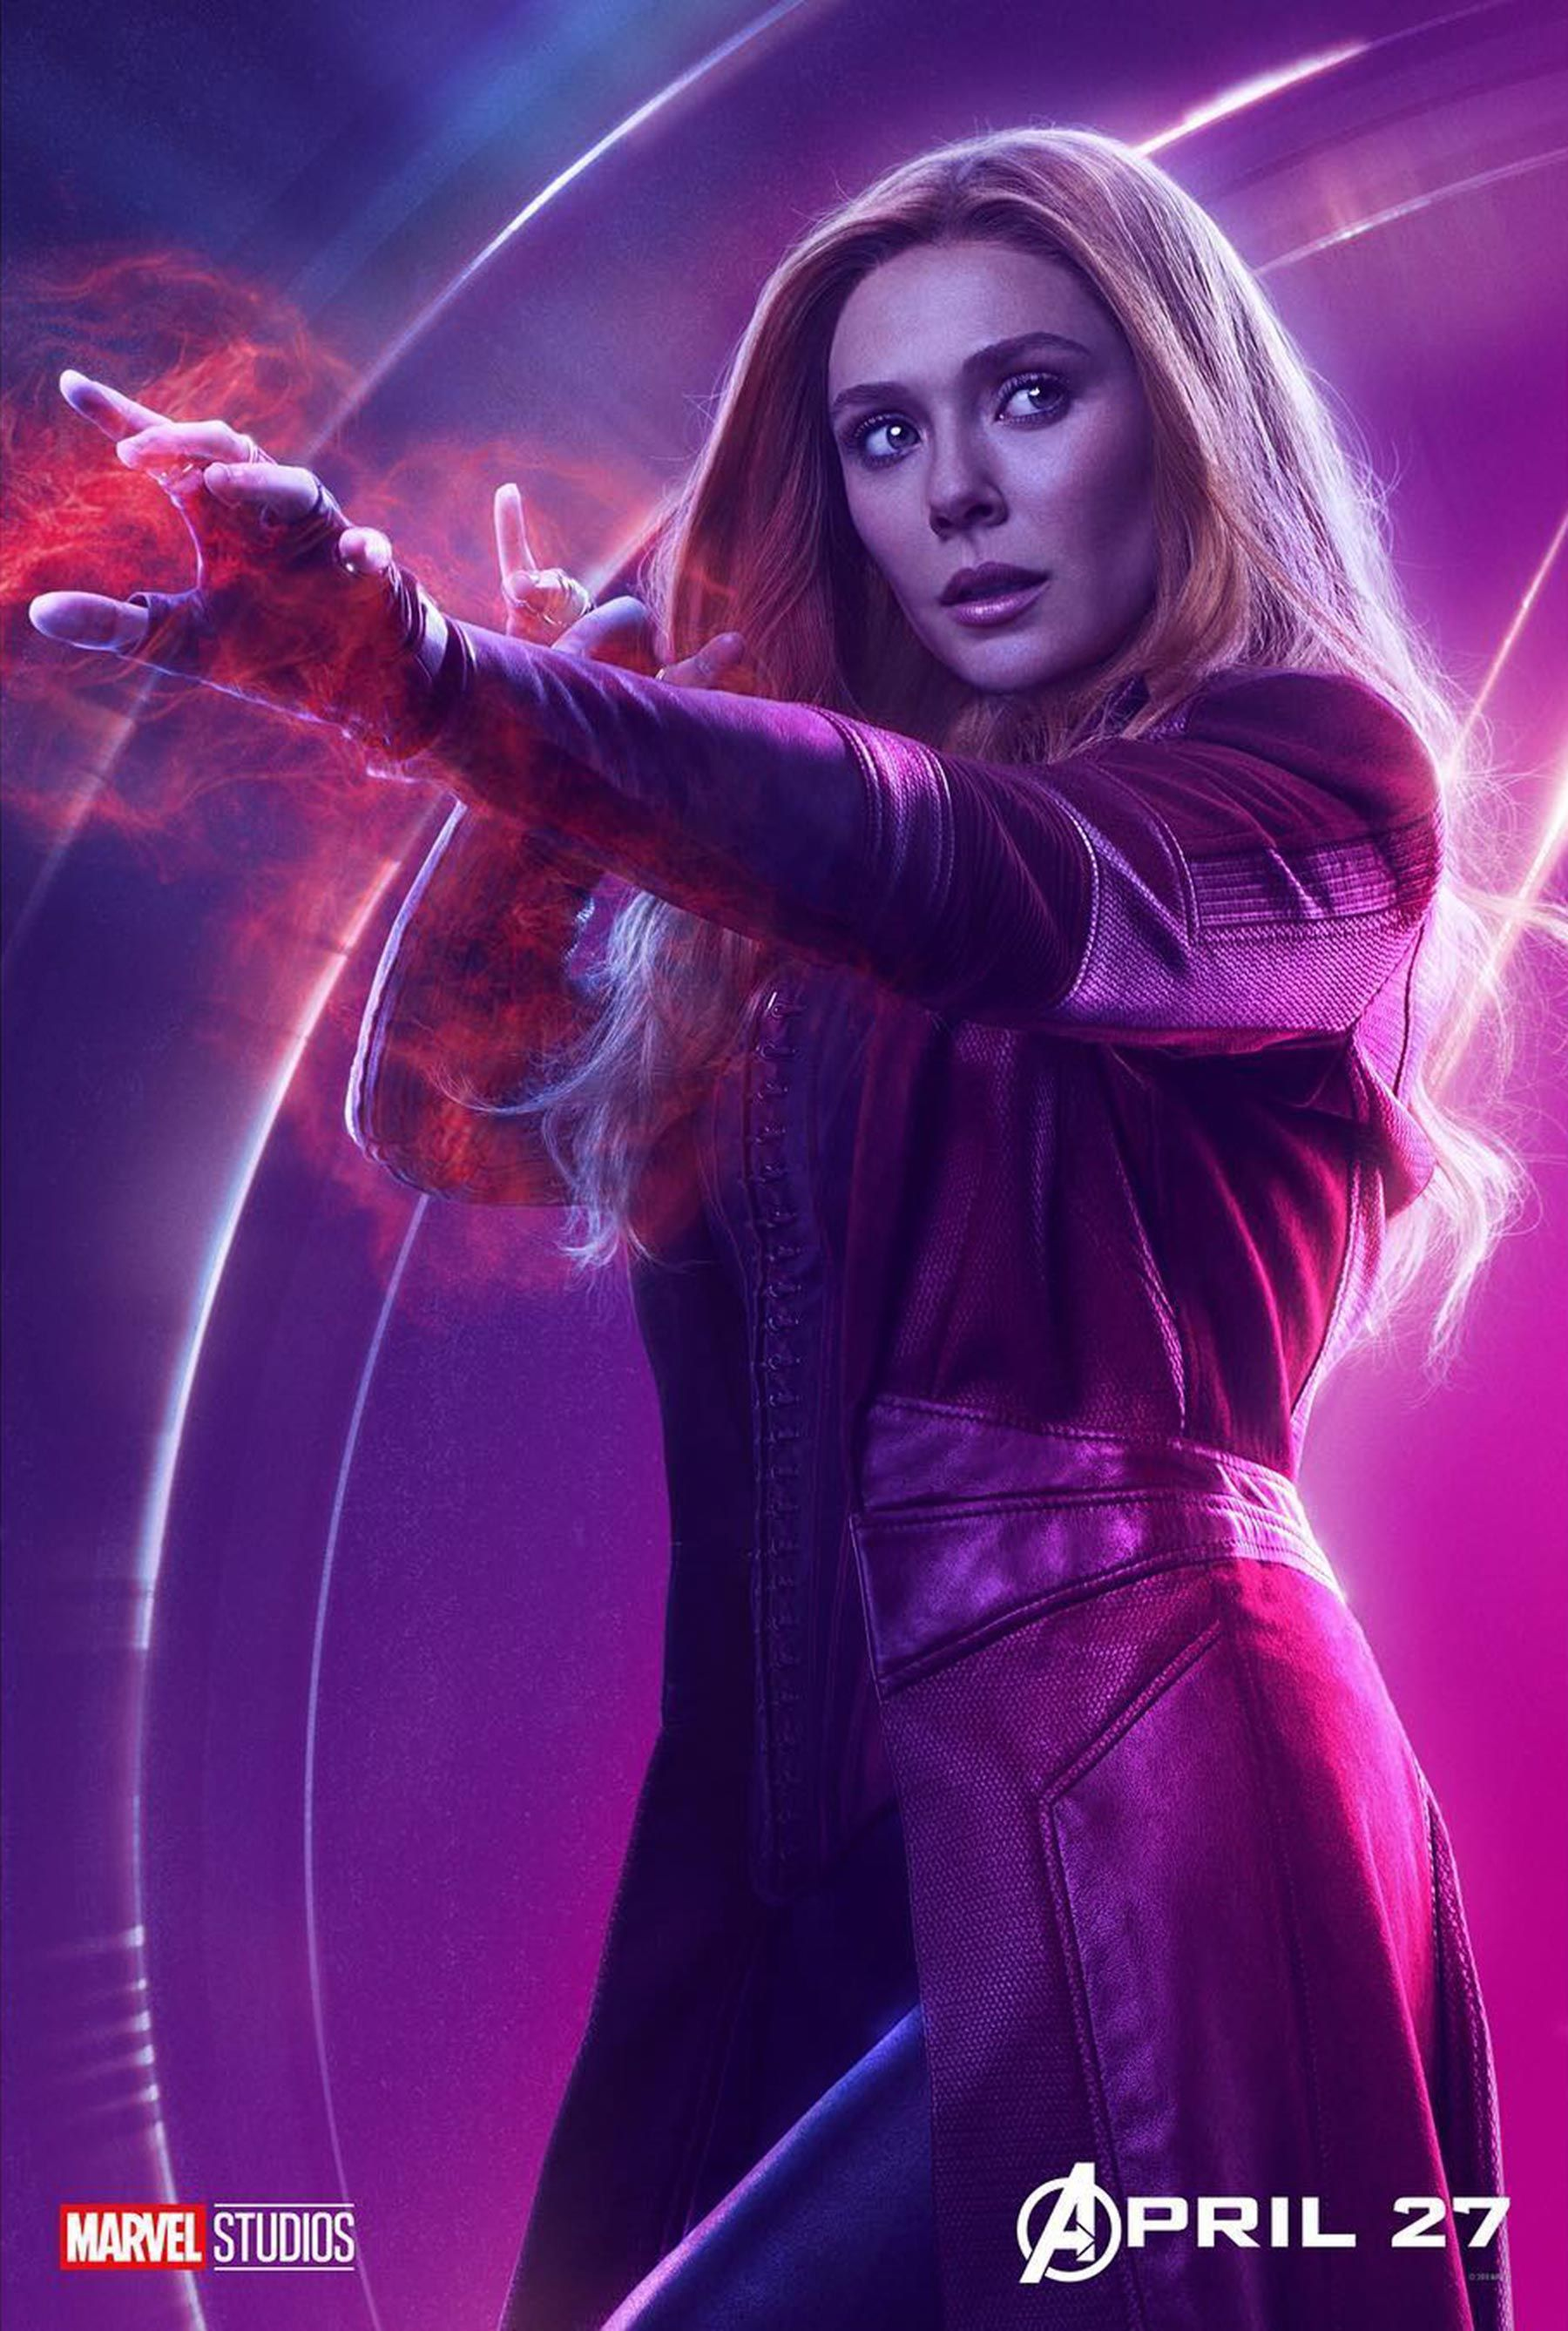 Avengers Assemble In 22 Infinity War Character Posters Marvel Superheroes Scarlet Witch Marvel Marvel